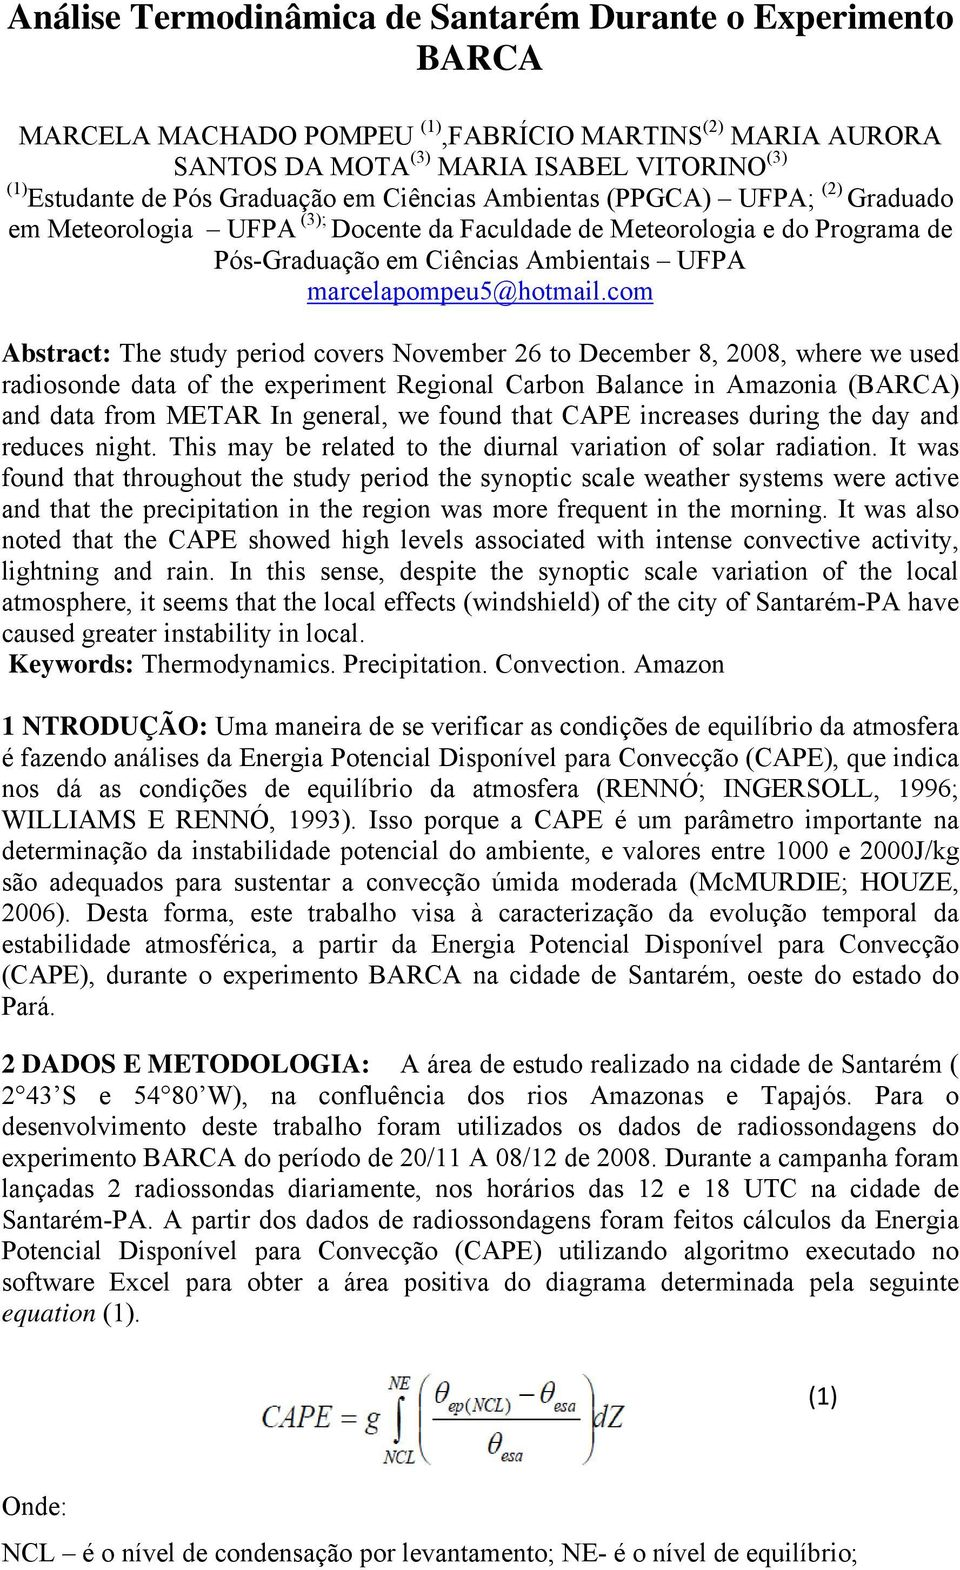 com Abstract: The study period covers November 26 to December 8, 2008, where we used radiosonde data of the experiment Regional Carbon Balance in Amazonia (BARCA) and data from METAR In general, we